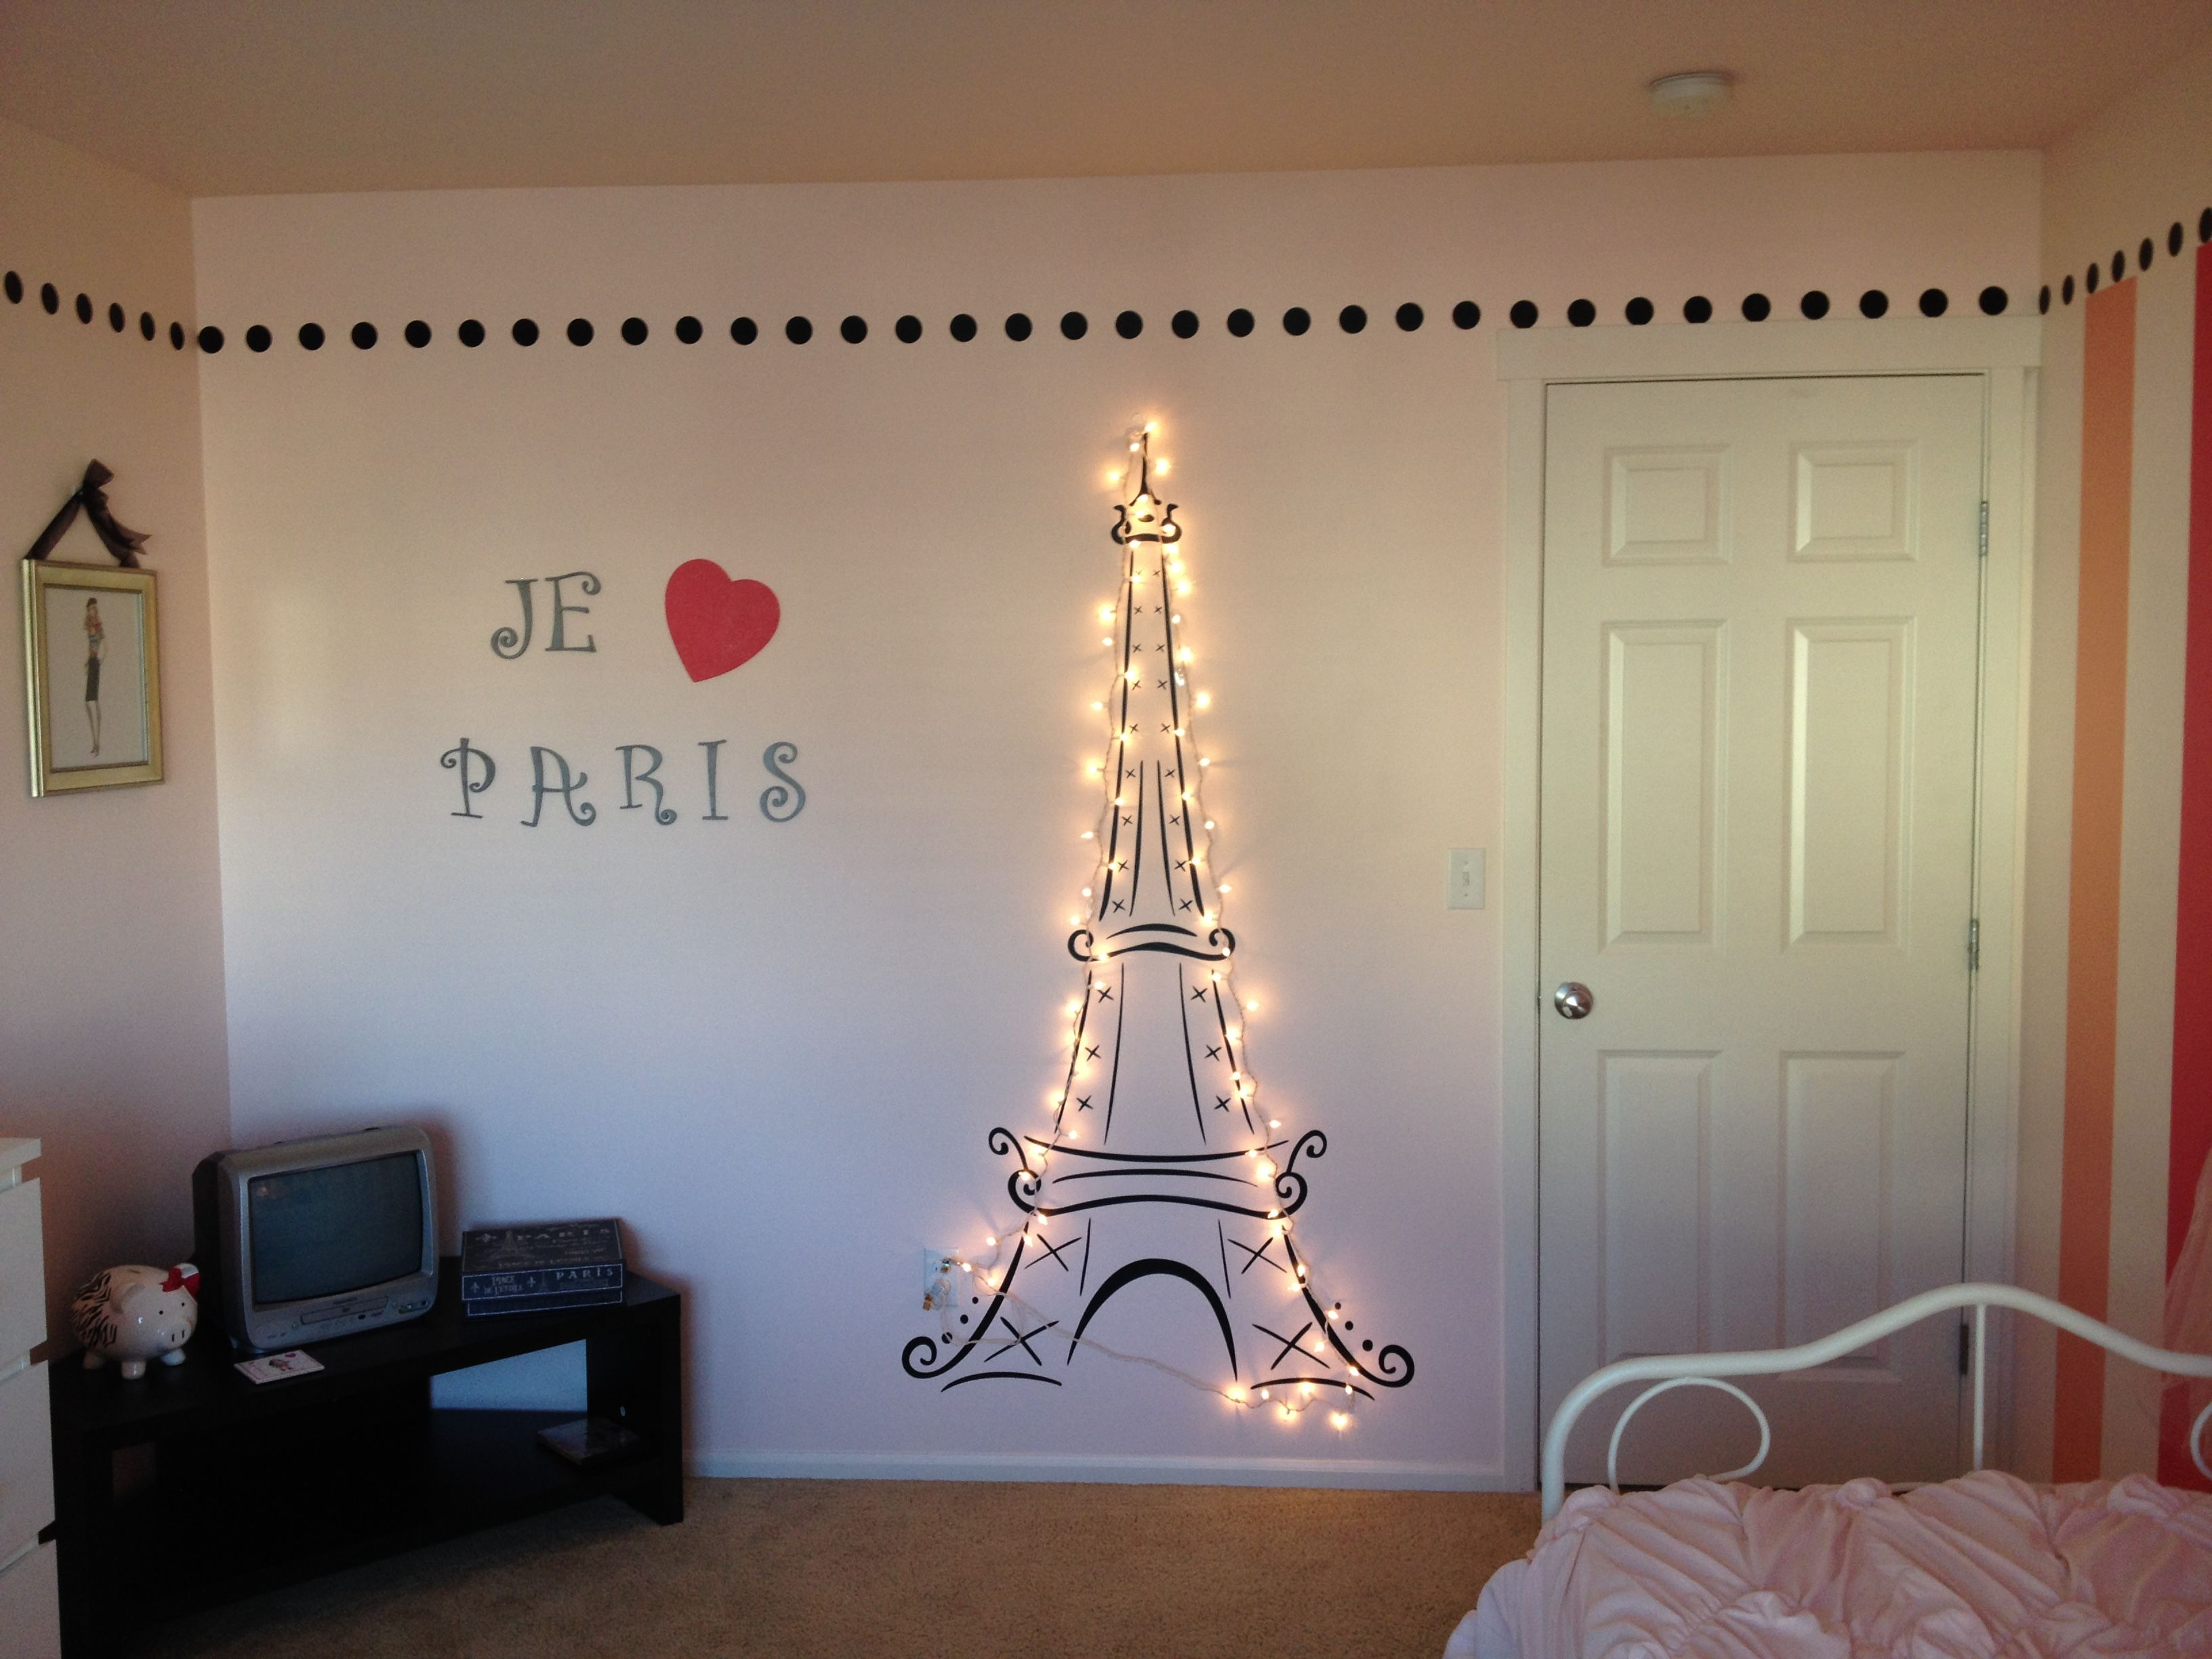 Lit eiffel tower for my daughter 39 s paris themed room for Room decor ideas paris